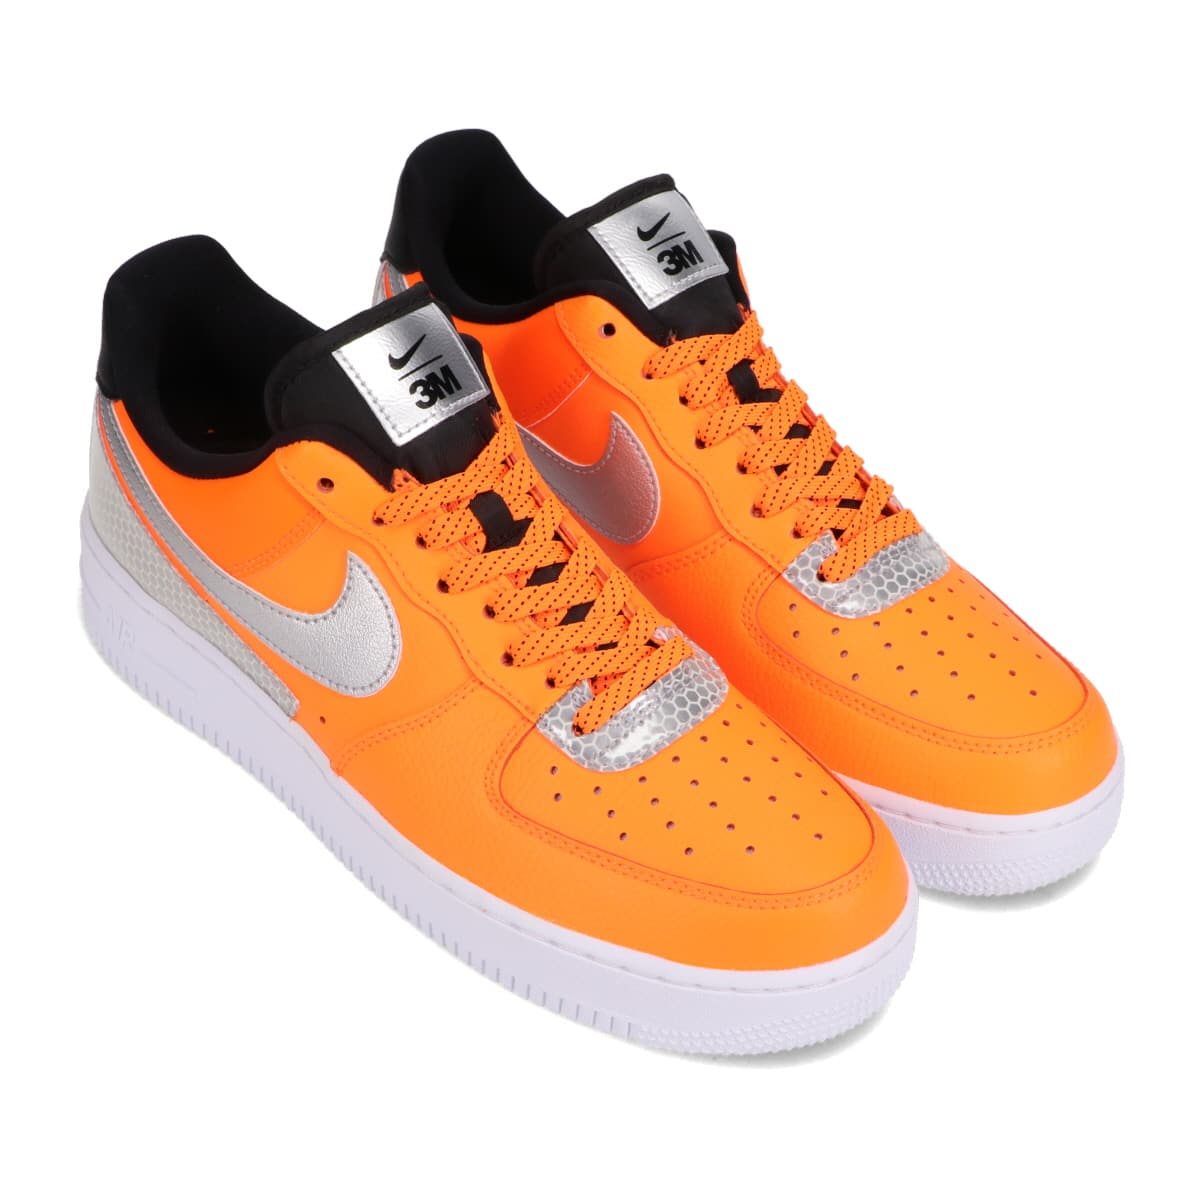 NIKE AIR FORCE 1 '07 LV8 3M TOTAL ORANGE/METALLIC SILVER-BLACK 20HO-I_photo_large